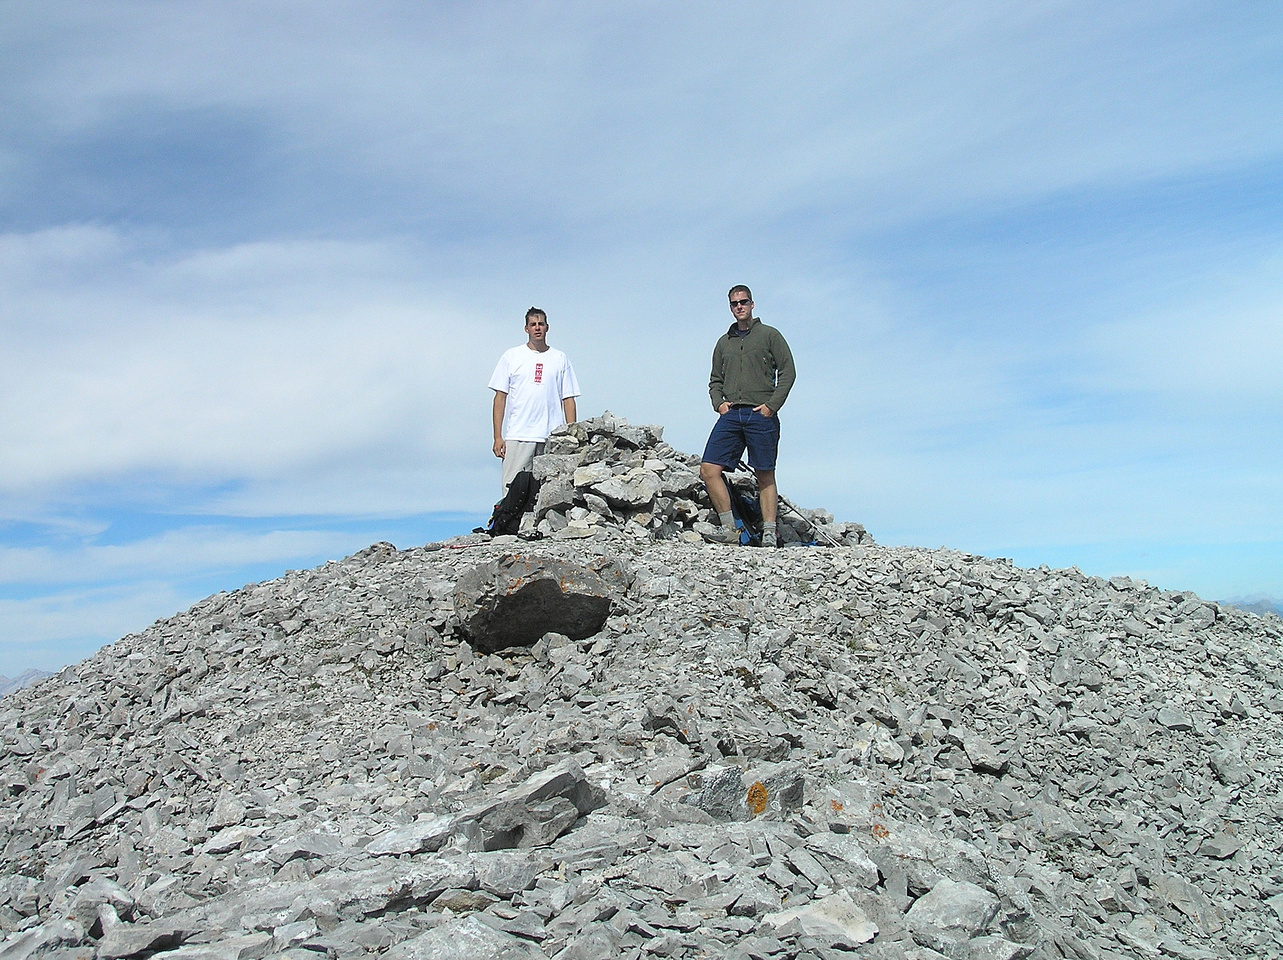 The summit of Mount Tecumseh - enjoying the nicest weather we had all week.